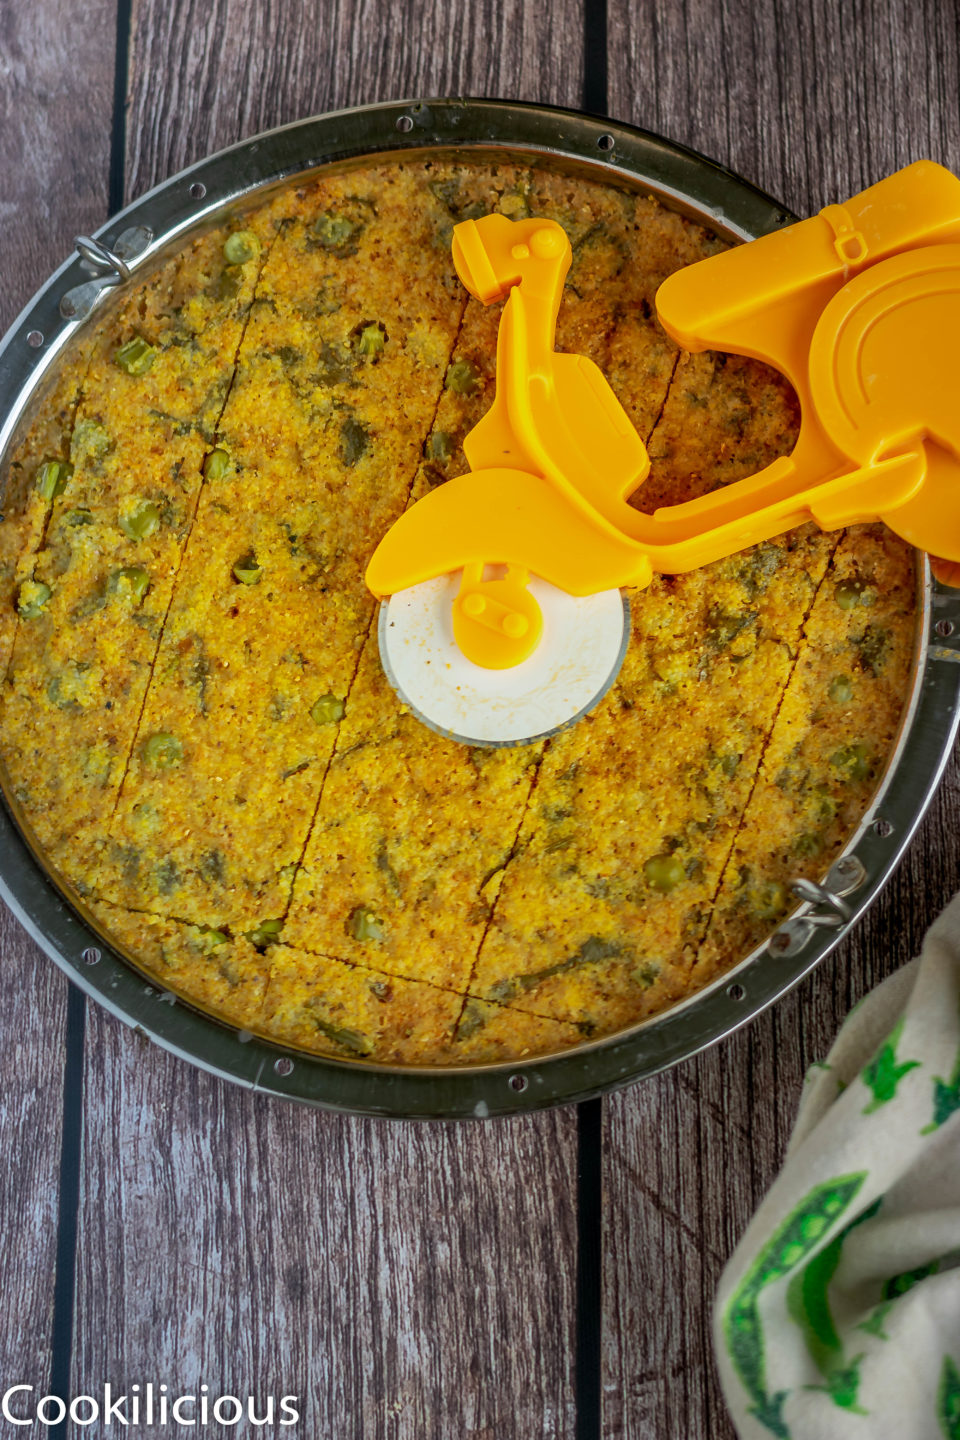 Corn Dhokla in a tray with a pizza cutter on top of it